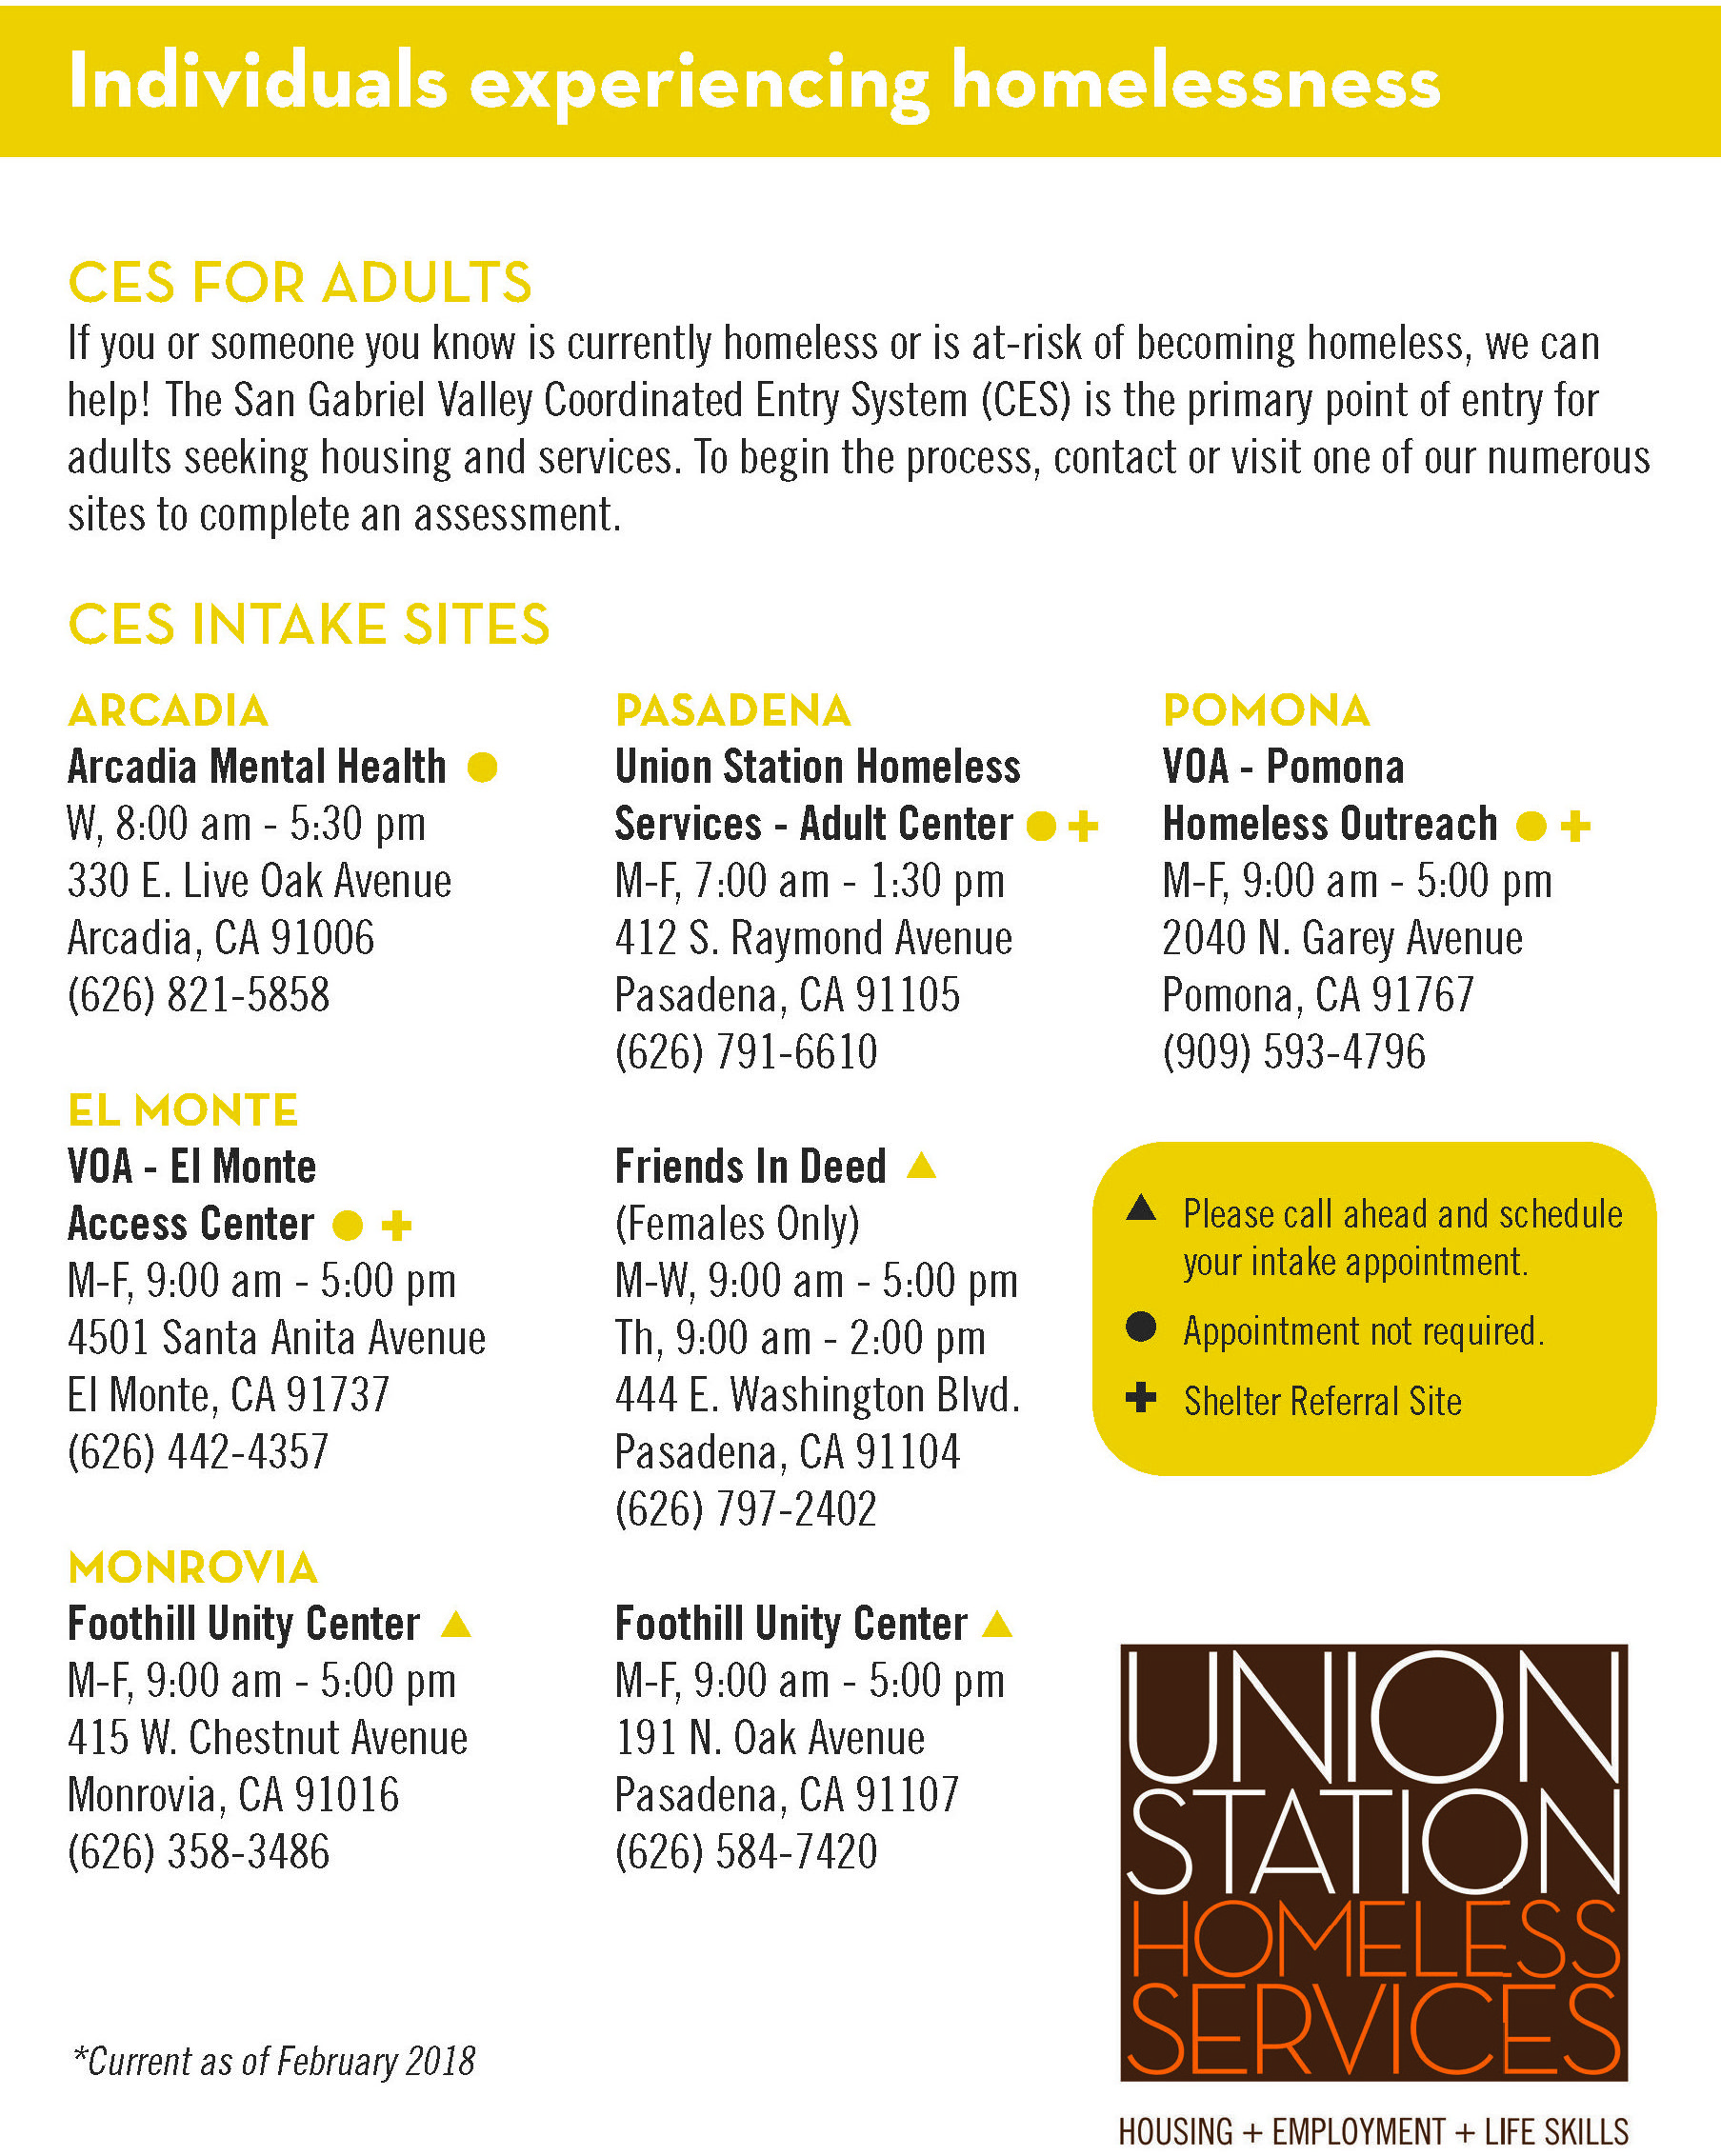 Ushs 2018 Outreach Card Print 1 Union Station Homeless Services